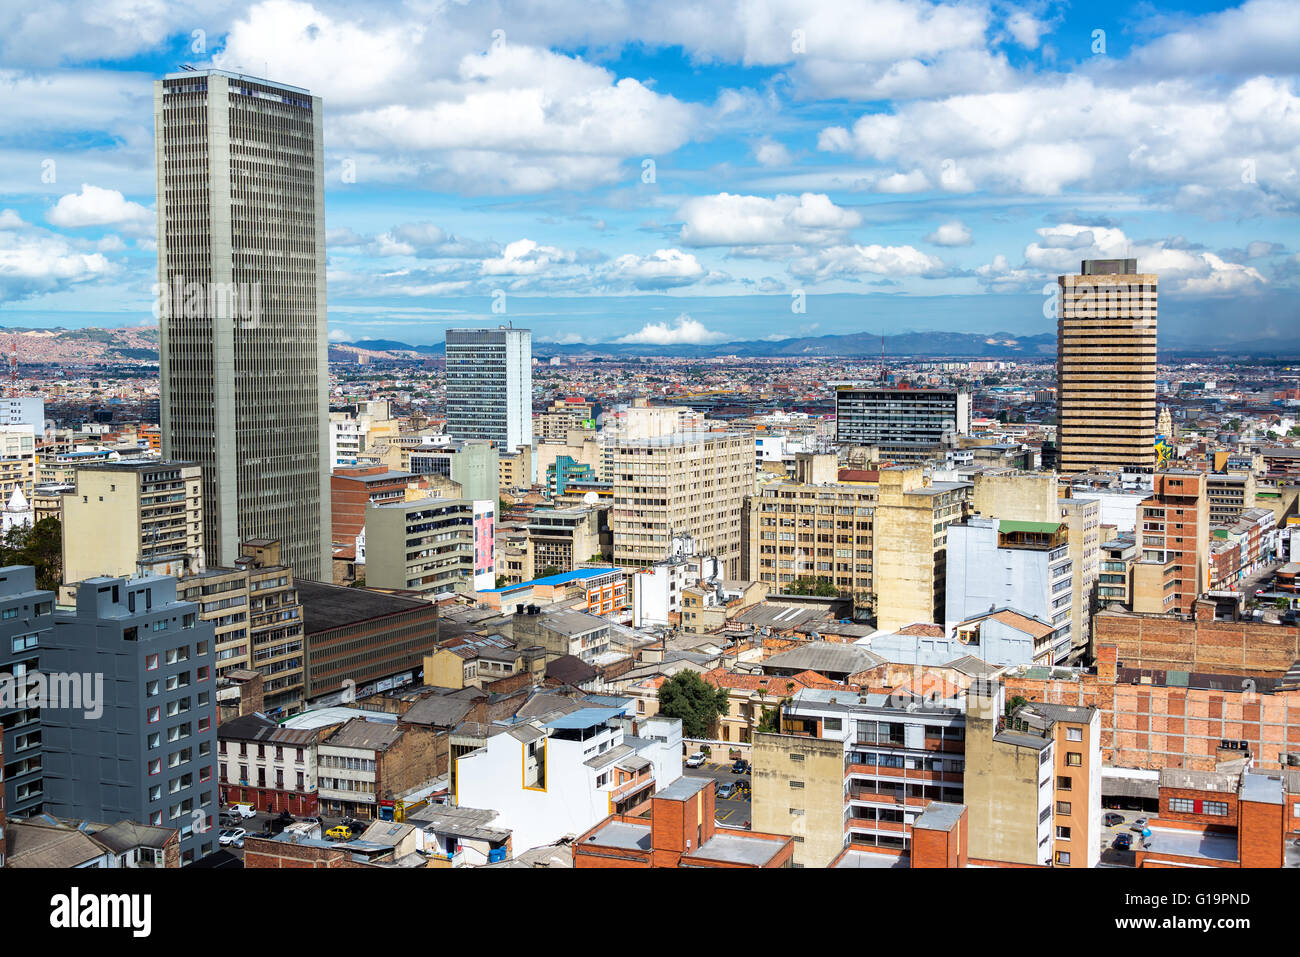 View of downtown Bogota, Colombia - Stock Image